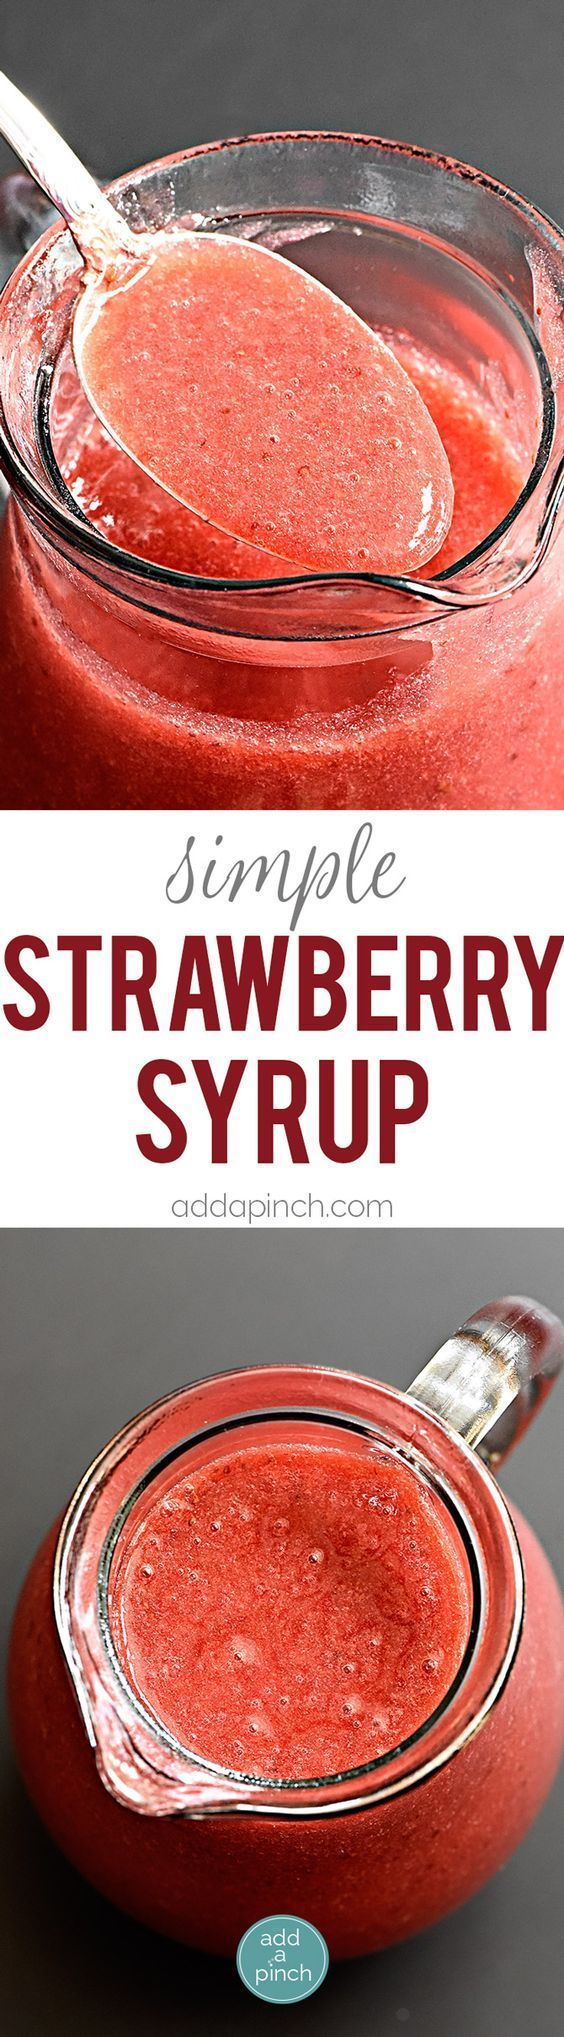 Simple strawberry syrup recipe uses just 3 ingredients! Ready in minutes, this strawberry syrup is perfect for so many dishes! // addapinch.com